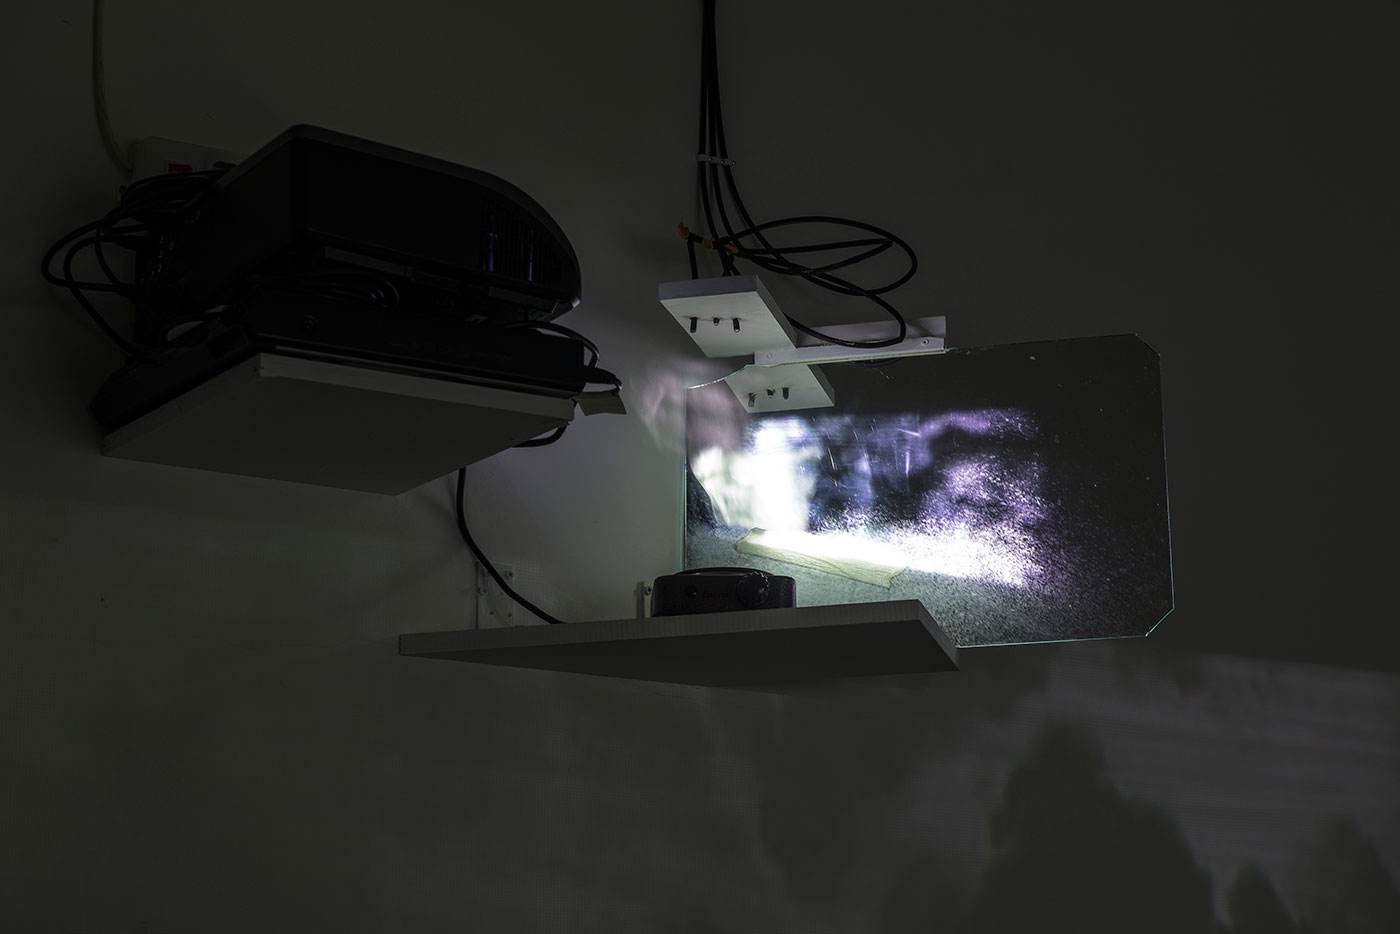 photographic image, electricity, hot plate, vapor, drop installation, glass, video equipment. Site specific installation